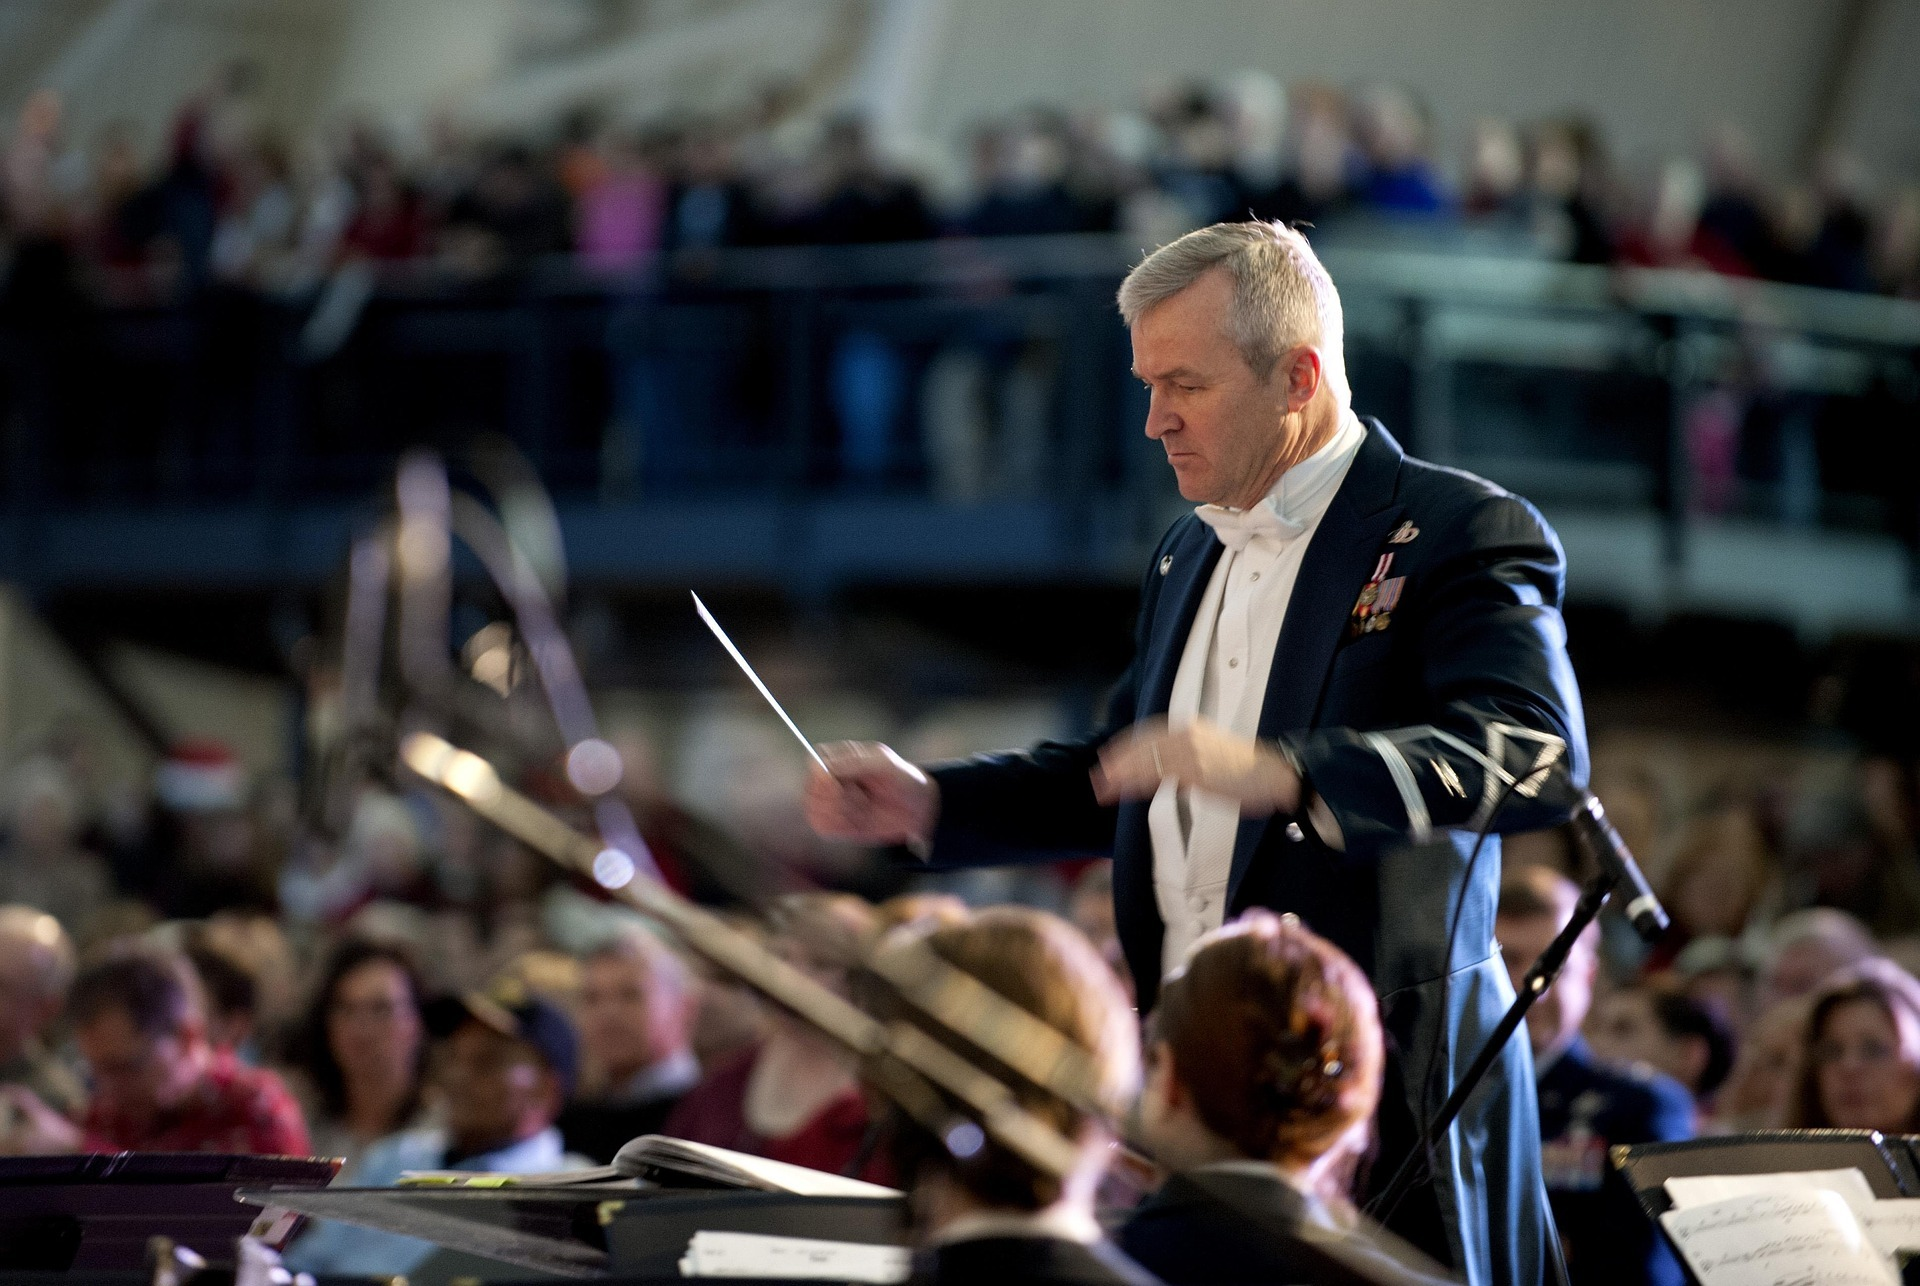 Conductor orchestra